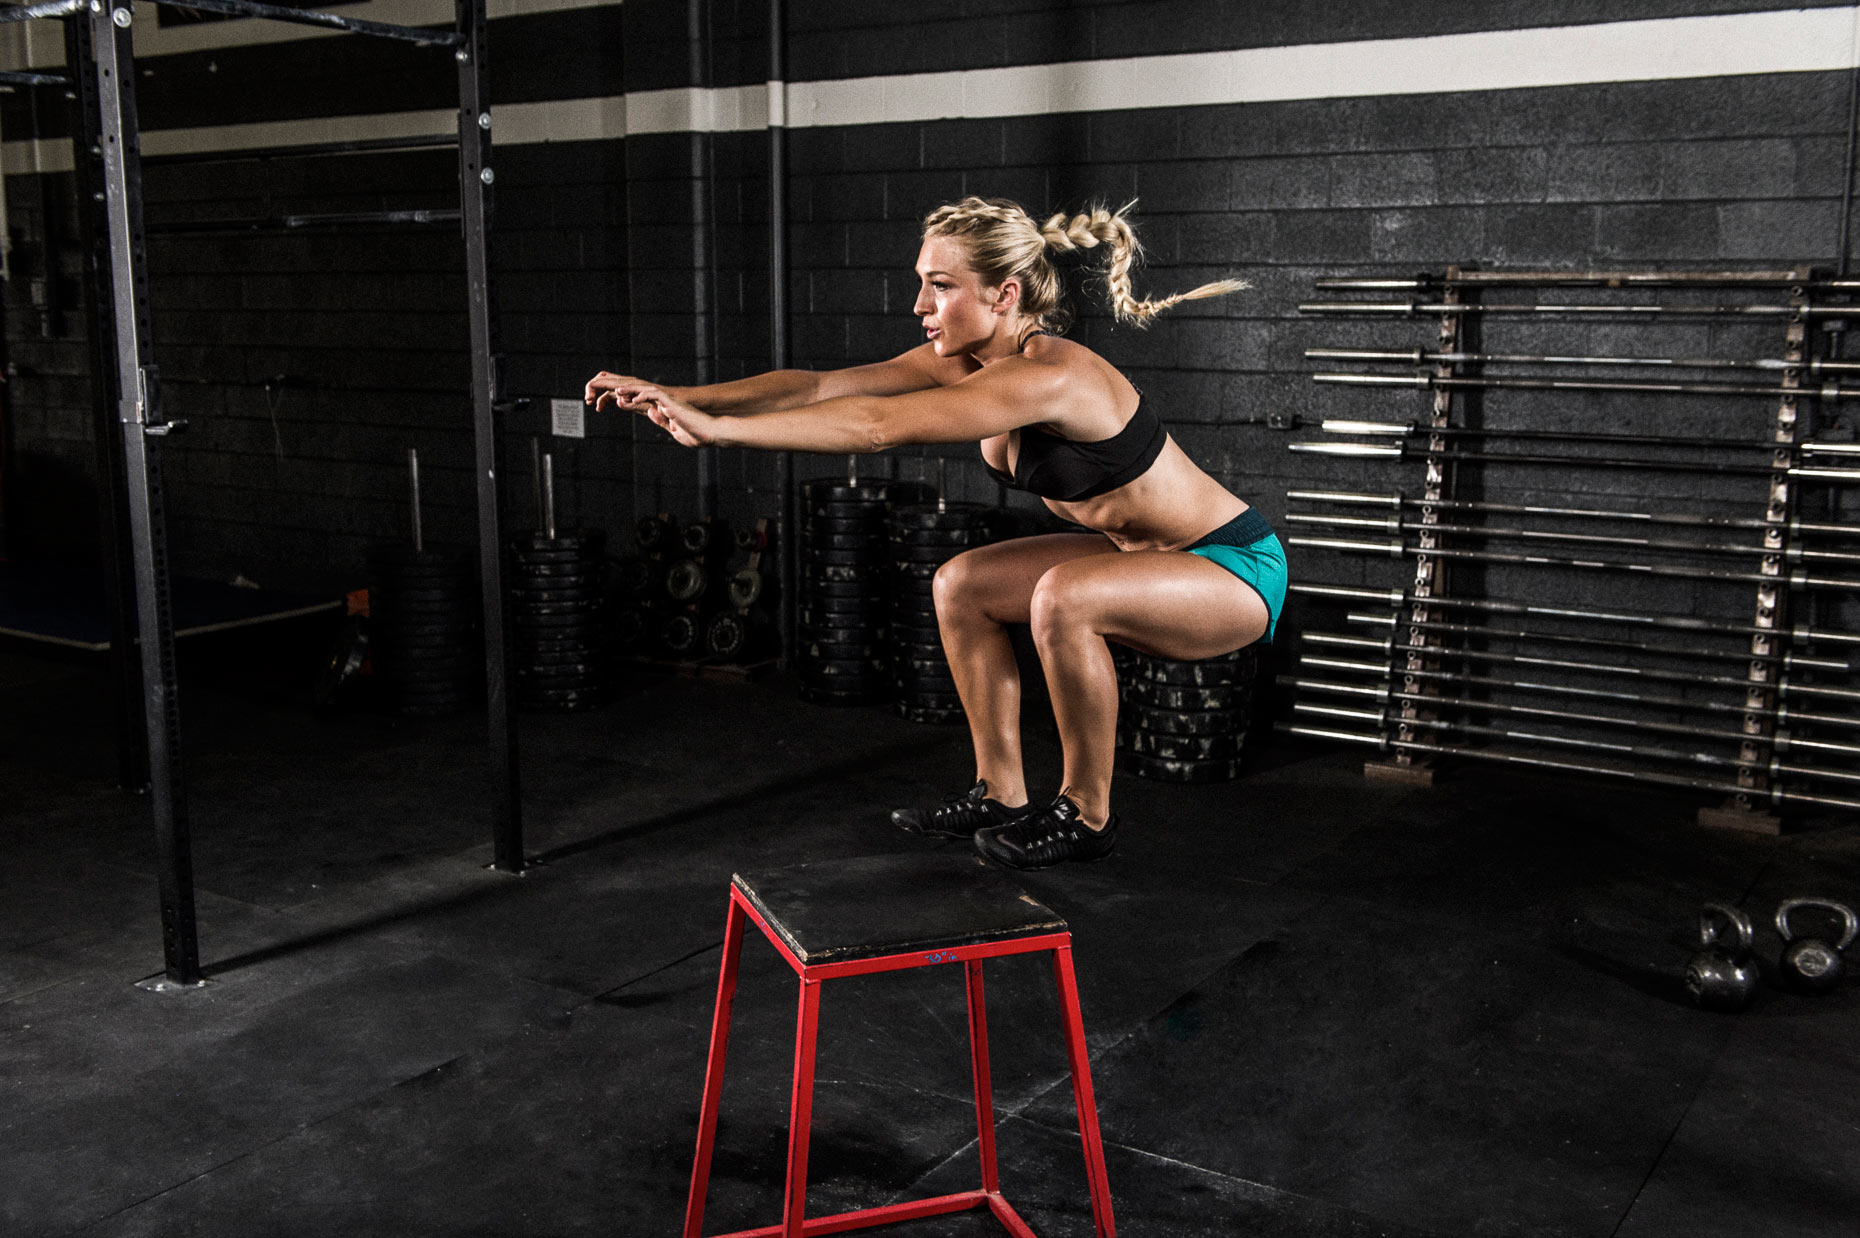 Sports Photography -Fit Female Jumping High in Gym Zija